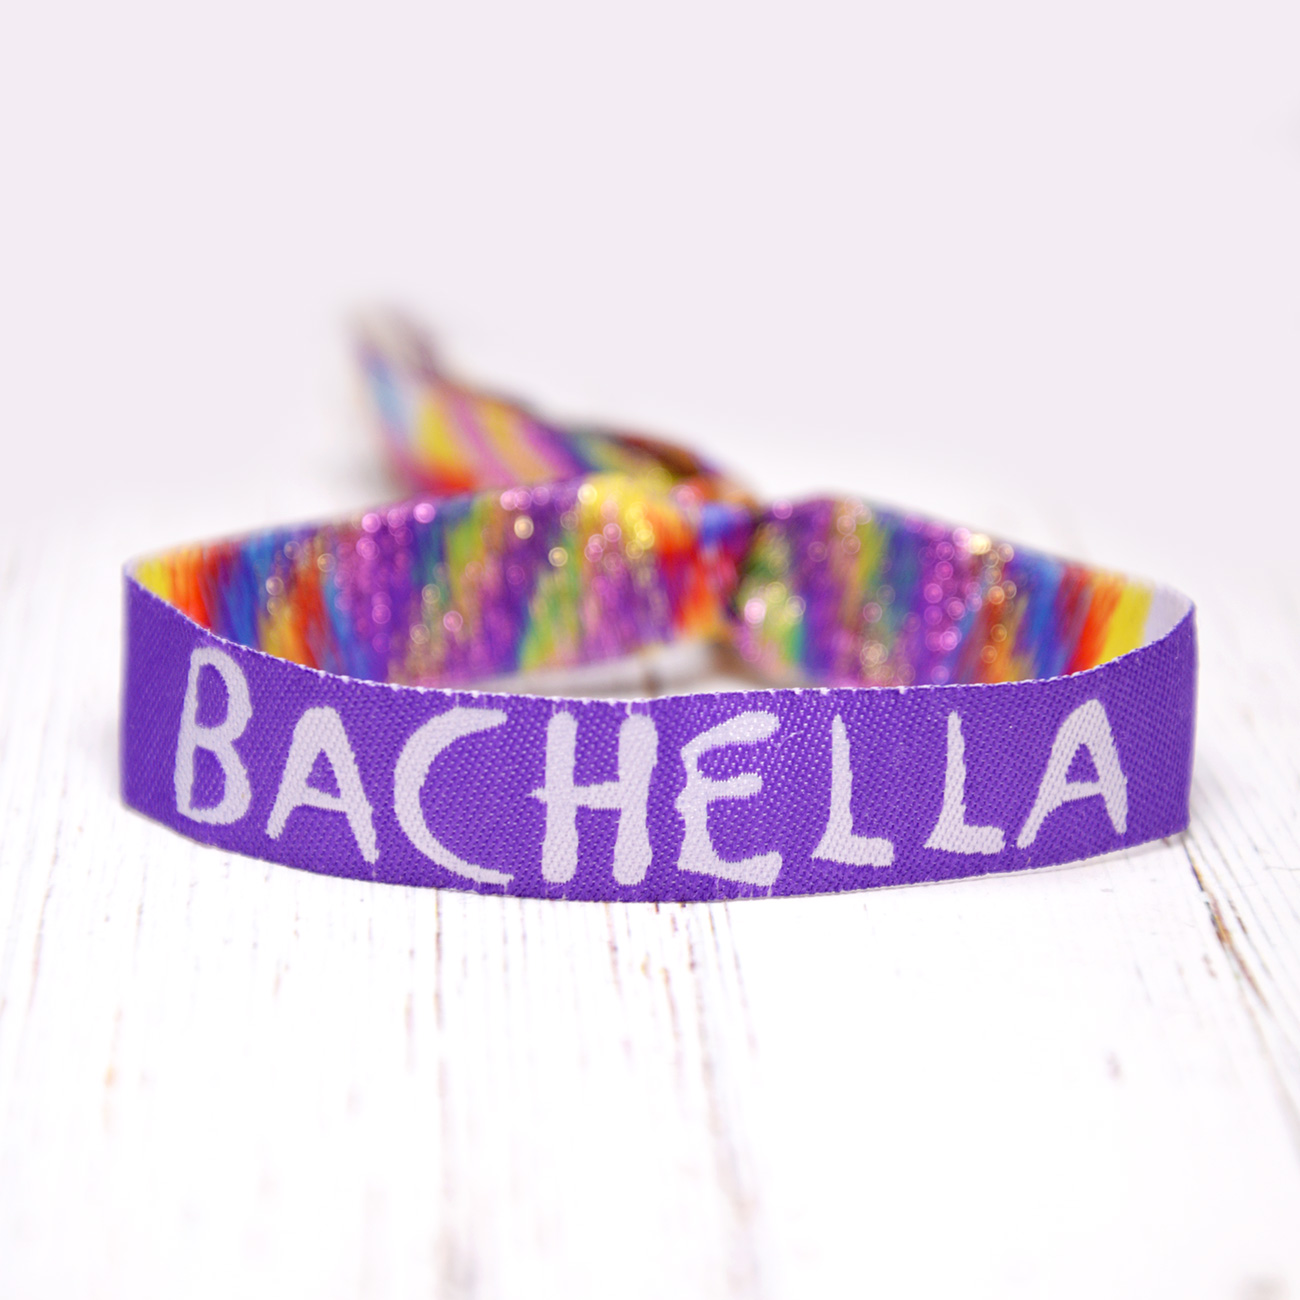 bachella festival bachelorette party wristbands bracelets